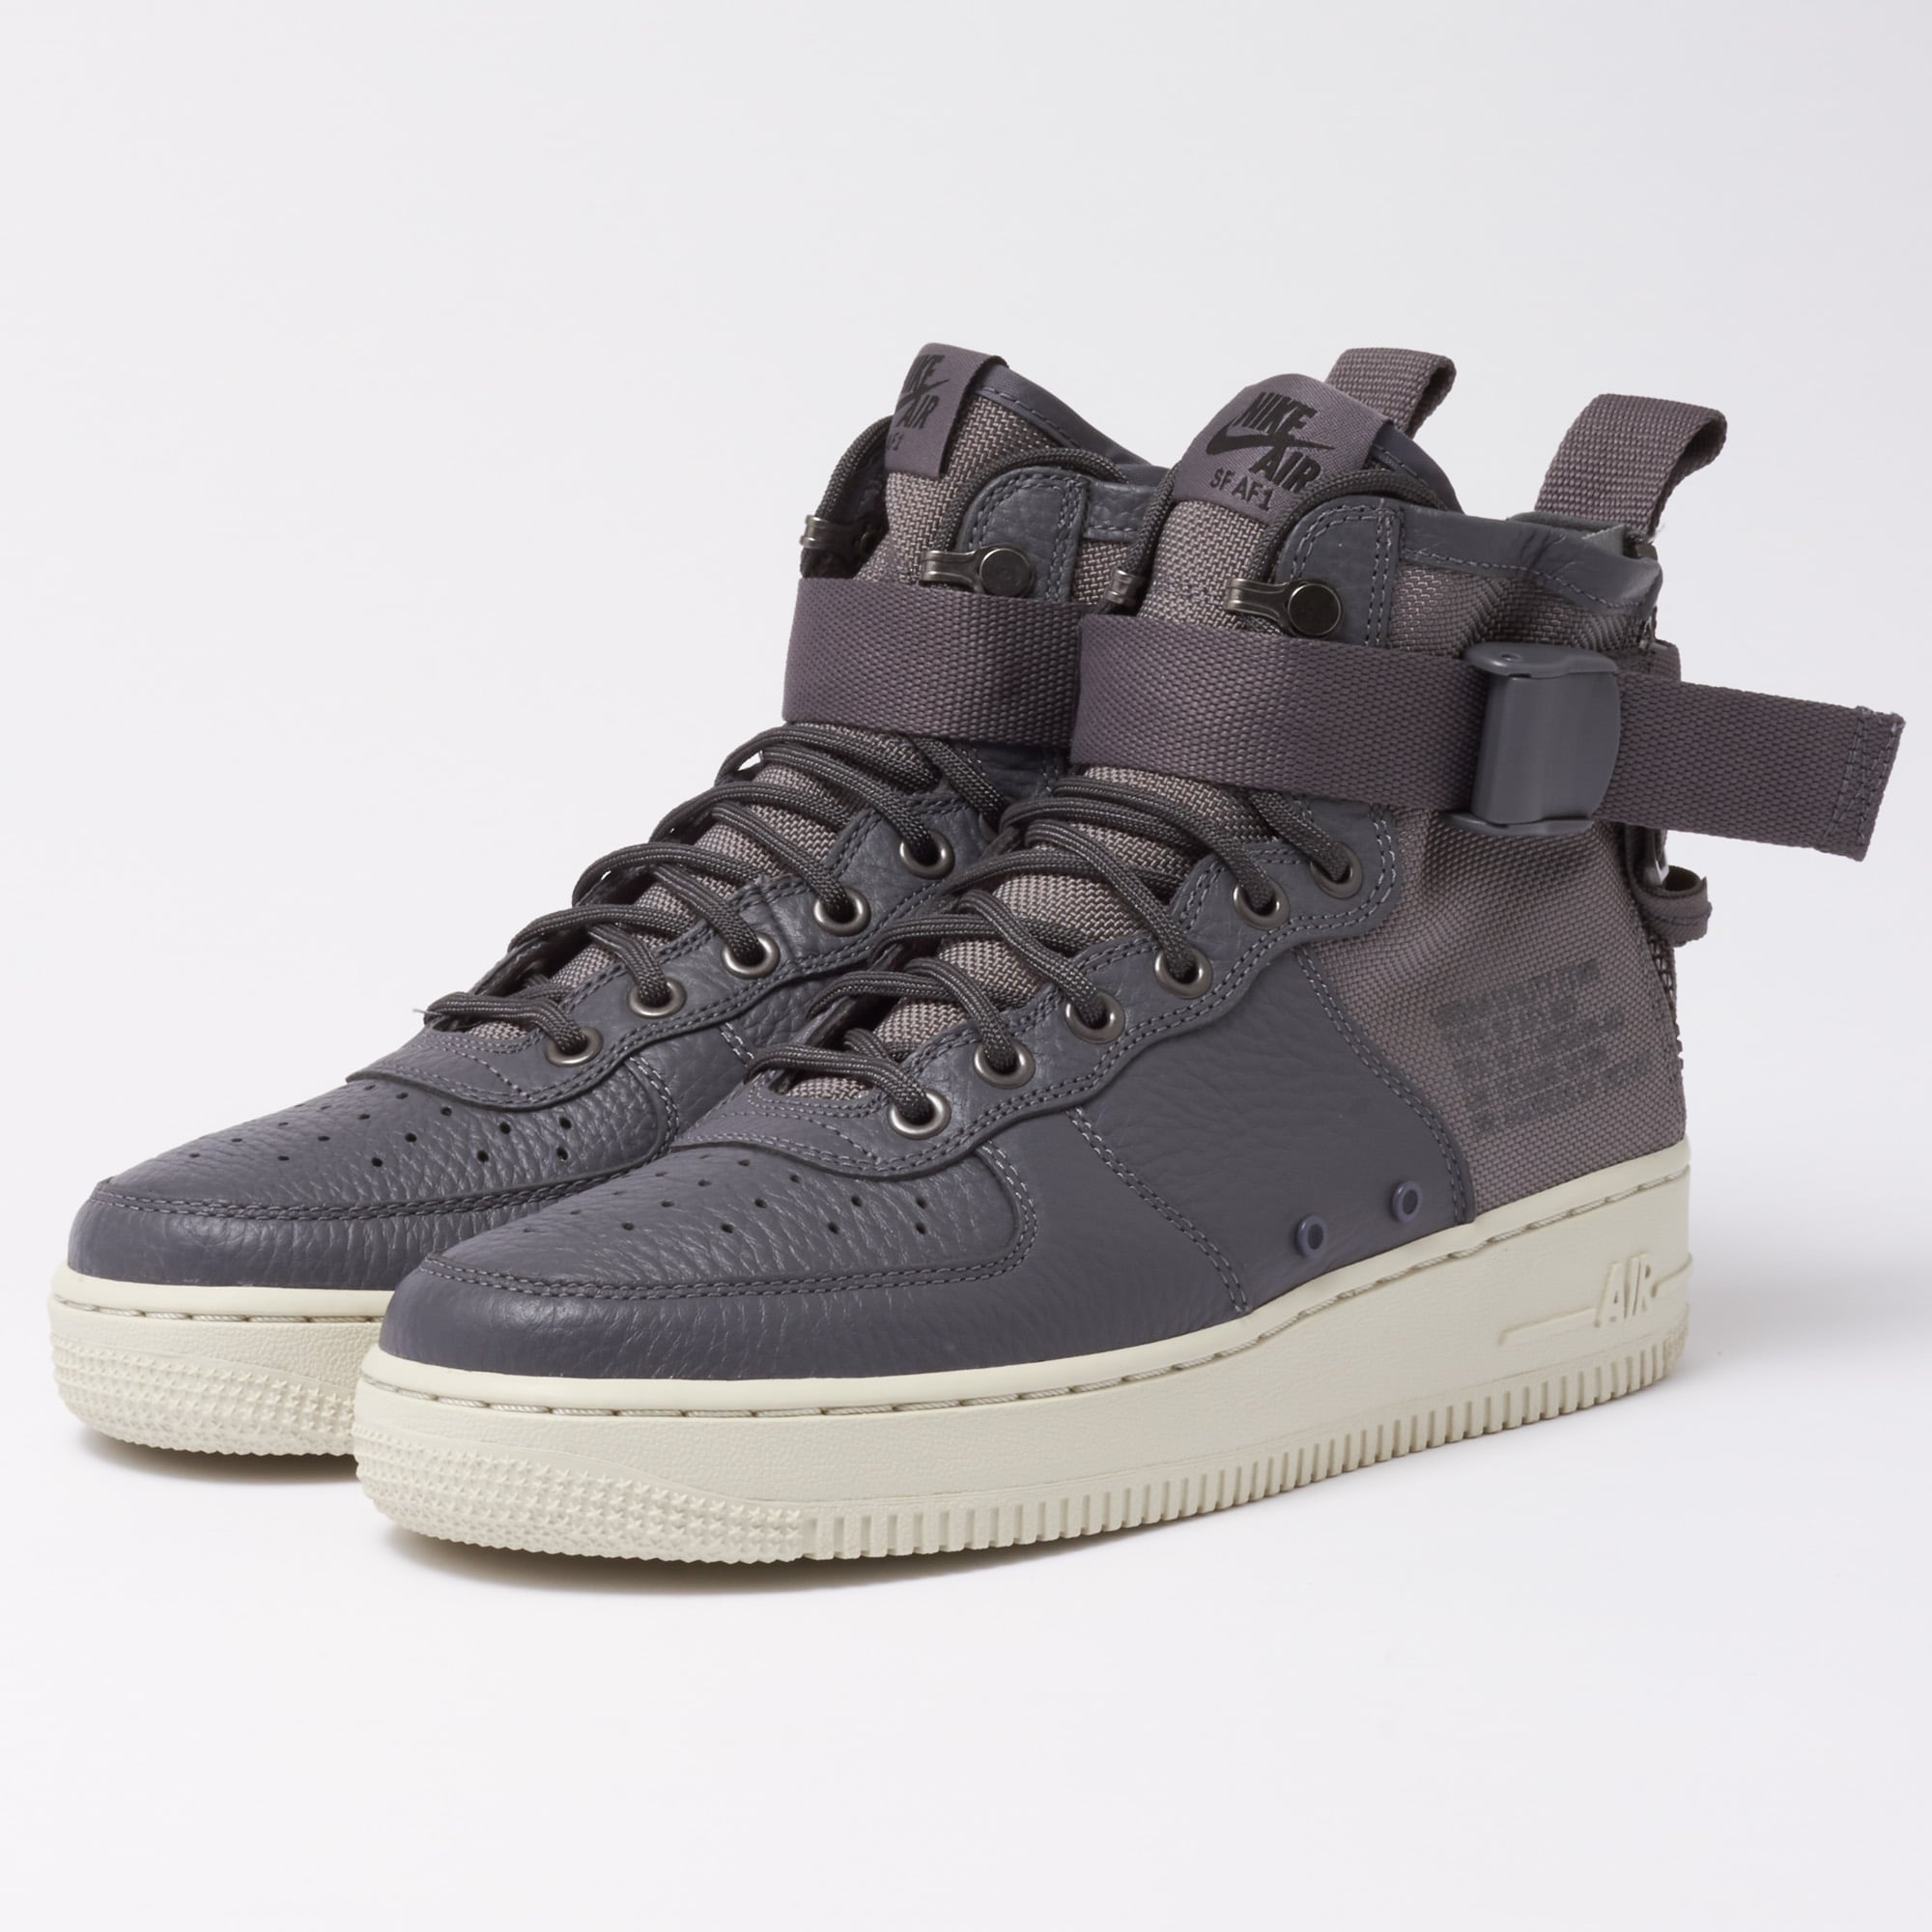 sf air force 1 hi 1.0 nz